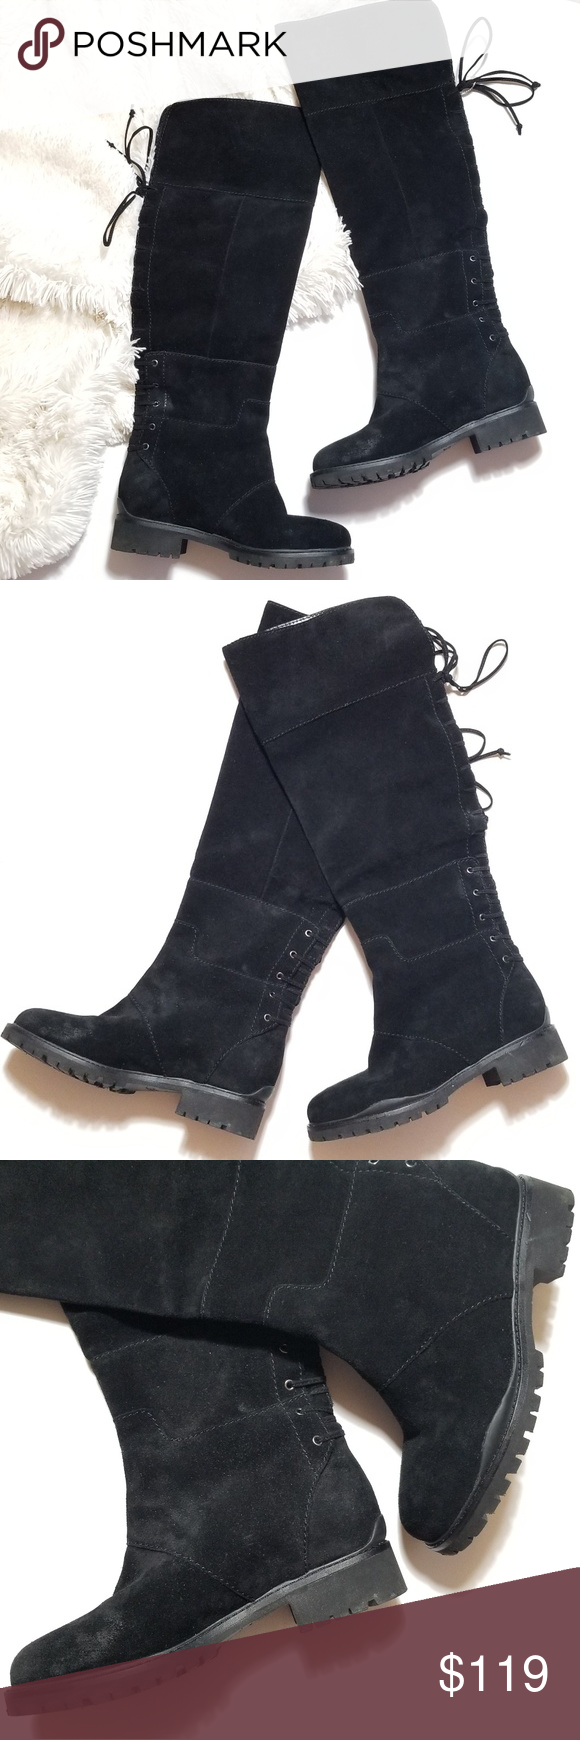 bc62b9aa28e NEW Nine West Mavira Suede Lace Up Over Knee Boots Embrace the Autumn  weather!